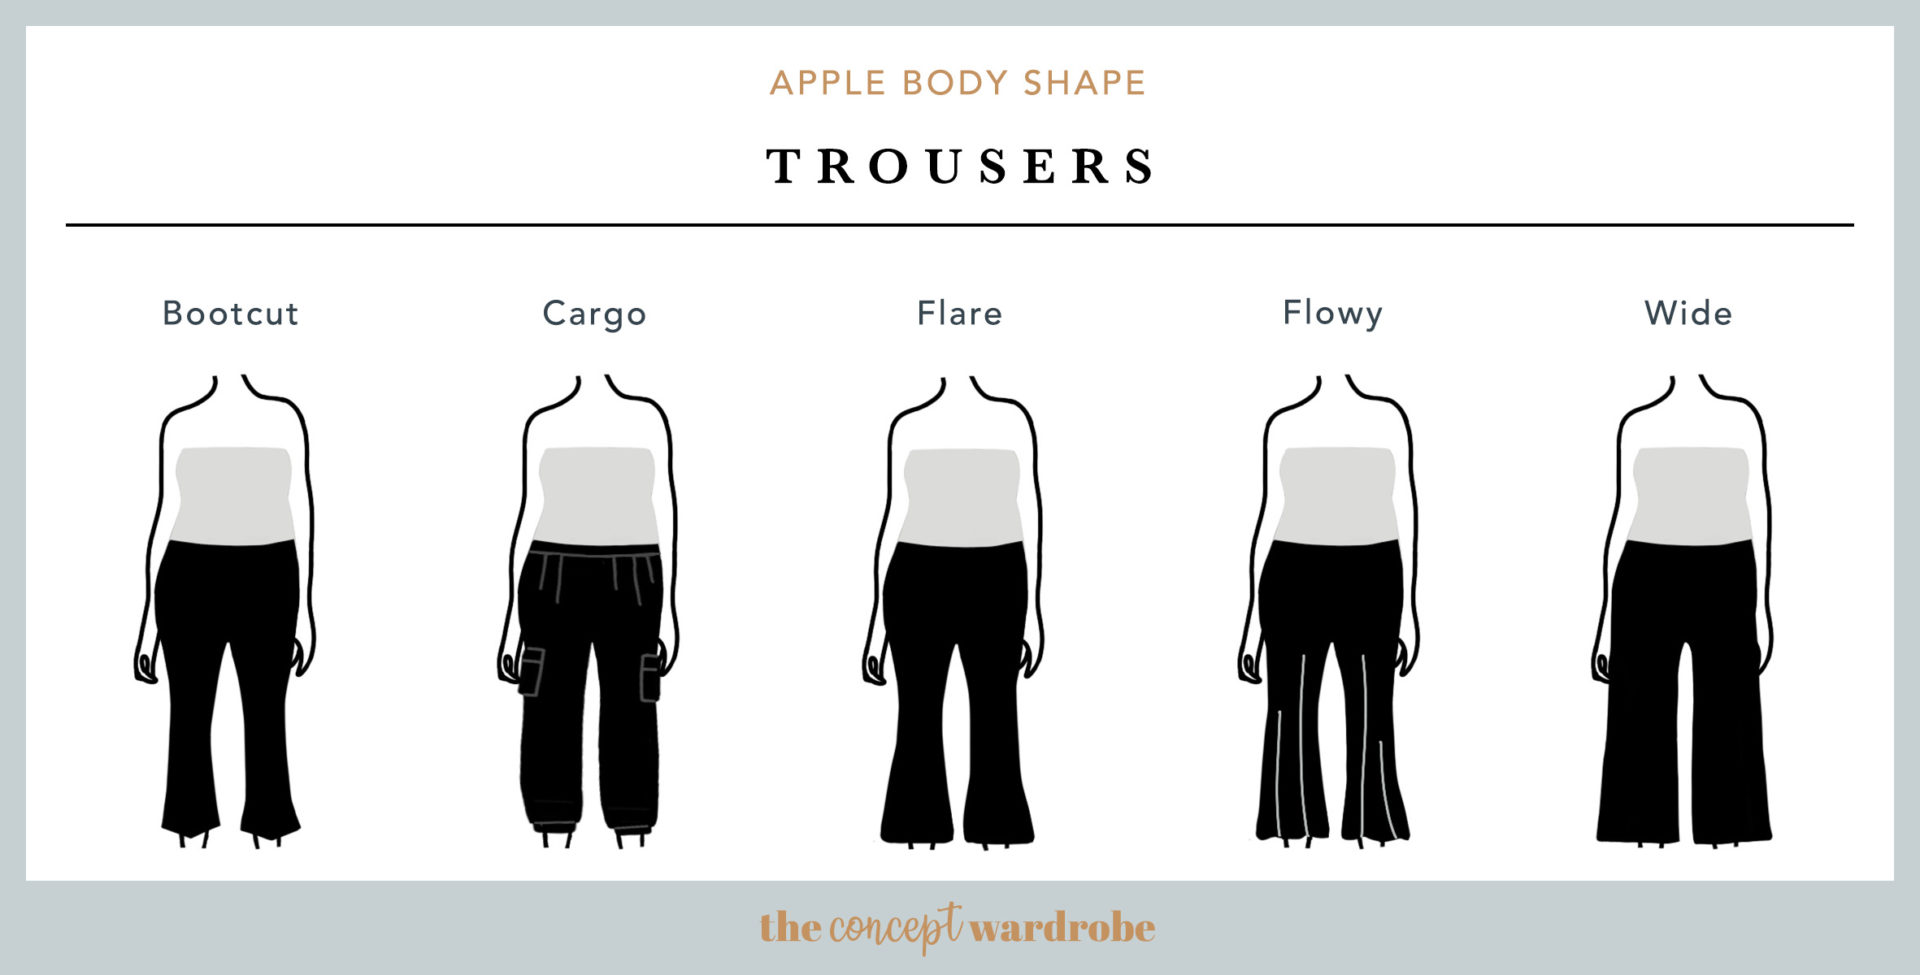 Apple Body Shape Trousers - the concept wardrobe